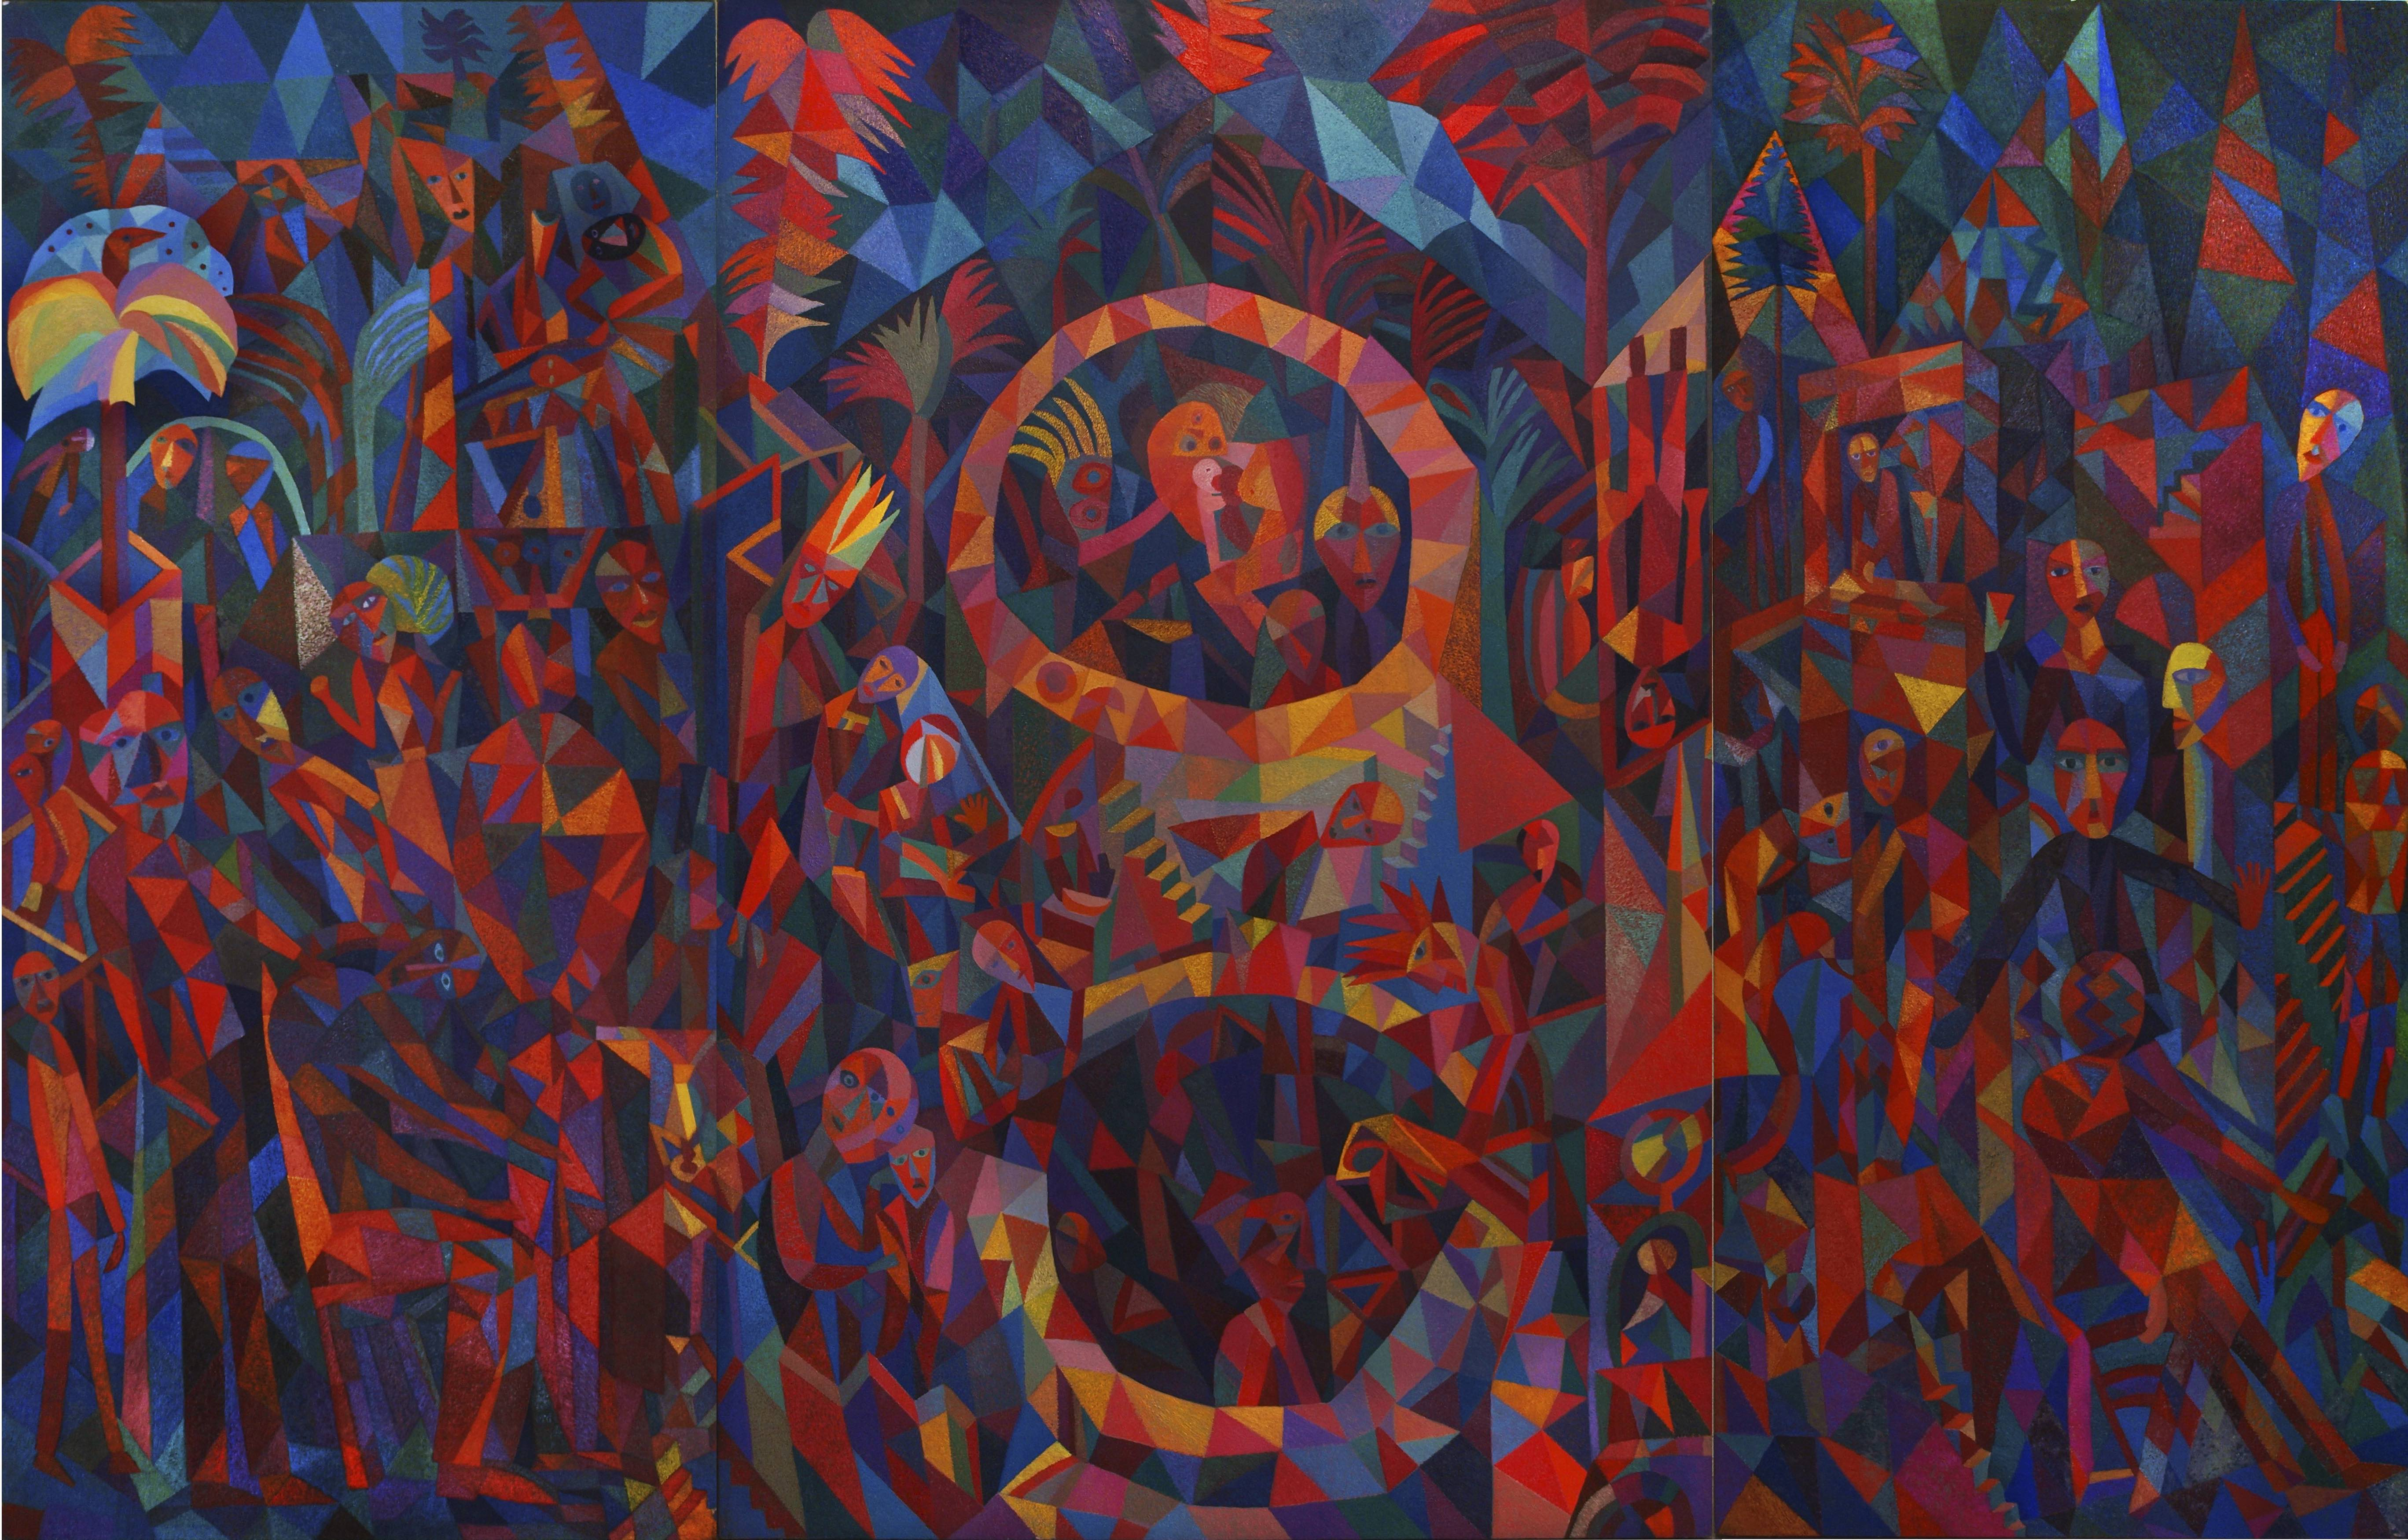 The Tempest, c.1995, Dave Pearson. Dave Pearson: Return to Byzantium at The Turnpike, Leigh (Greater Manchester)